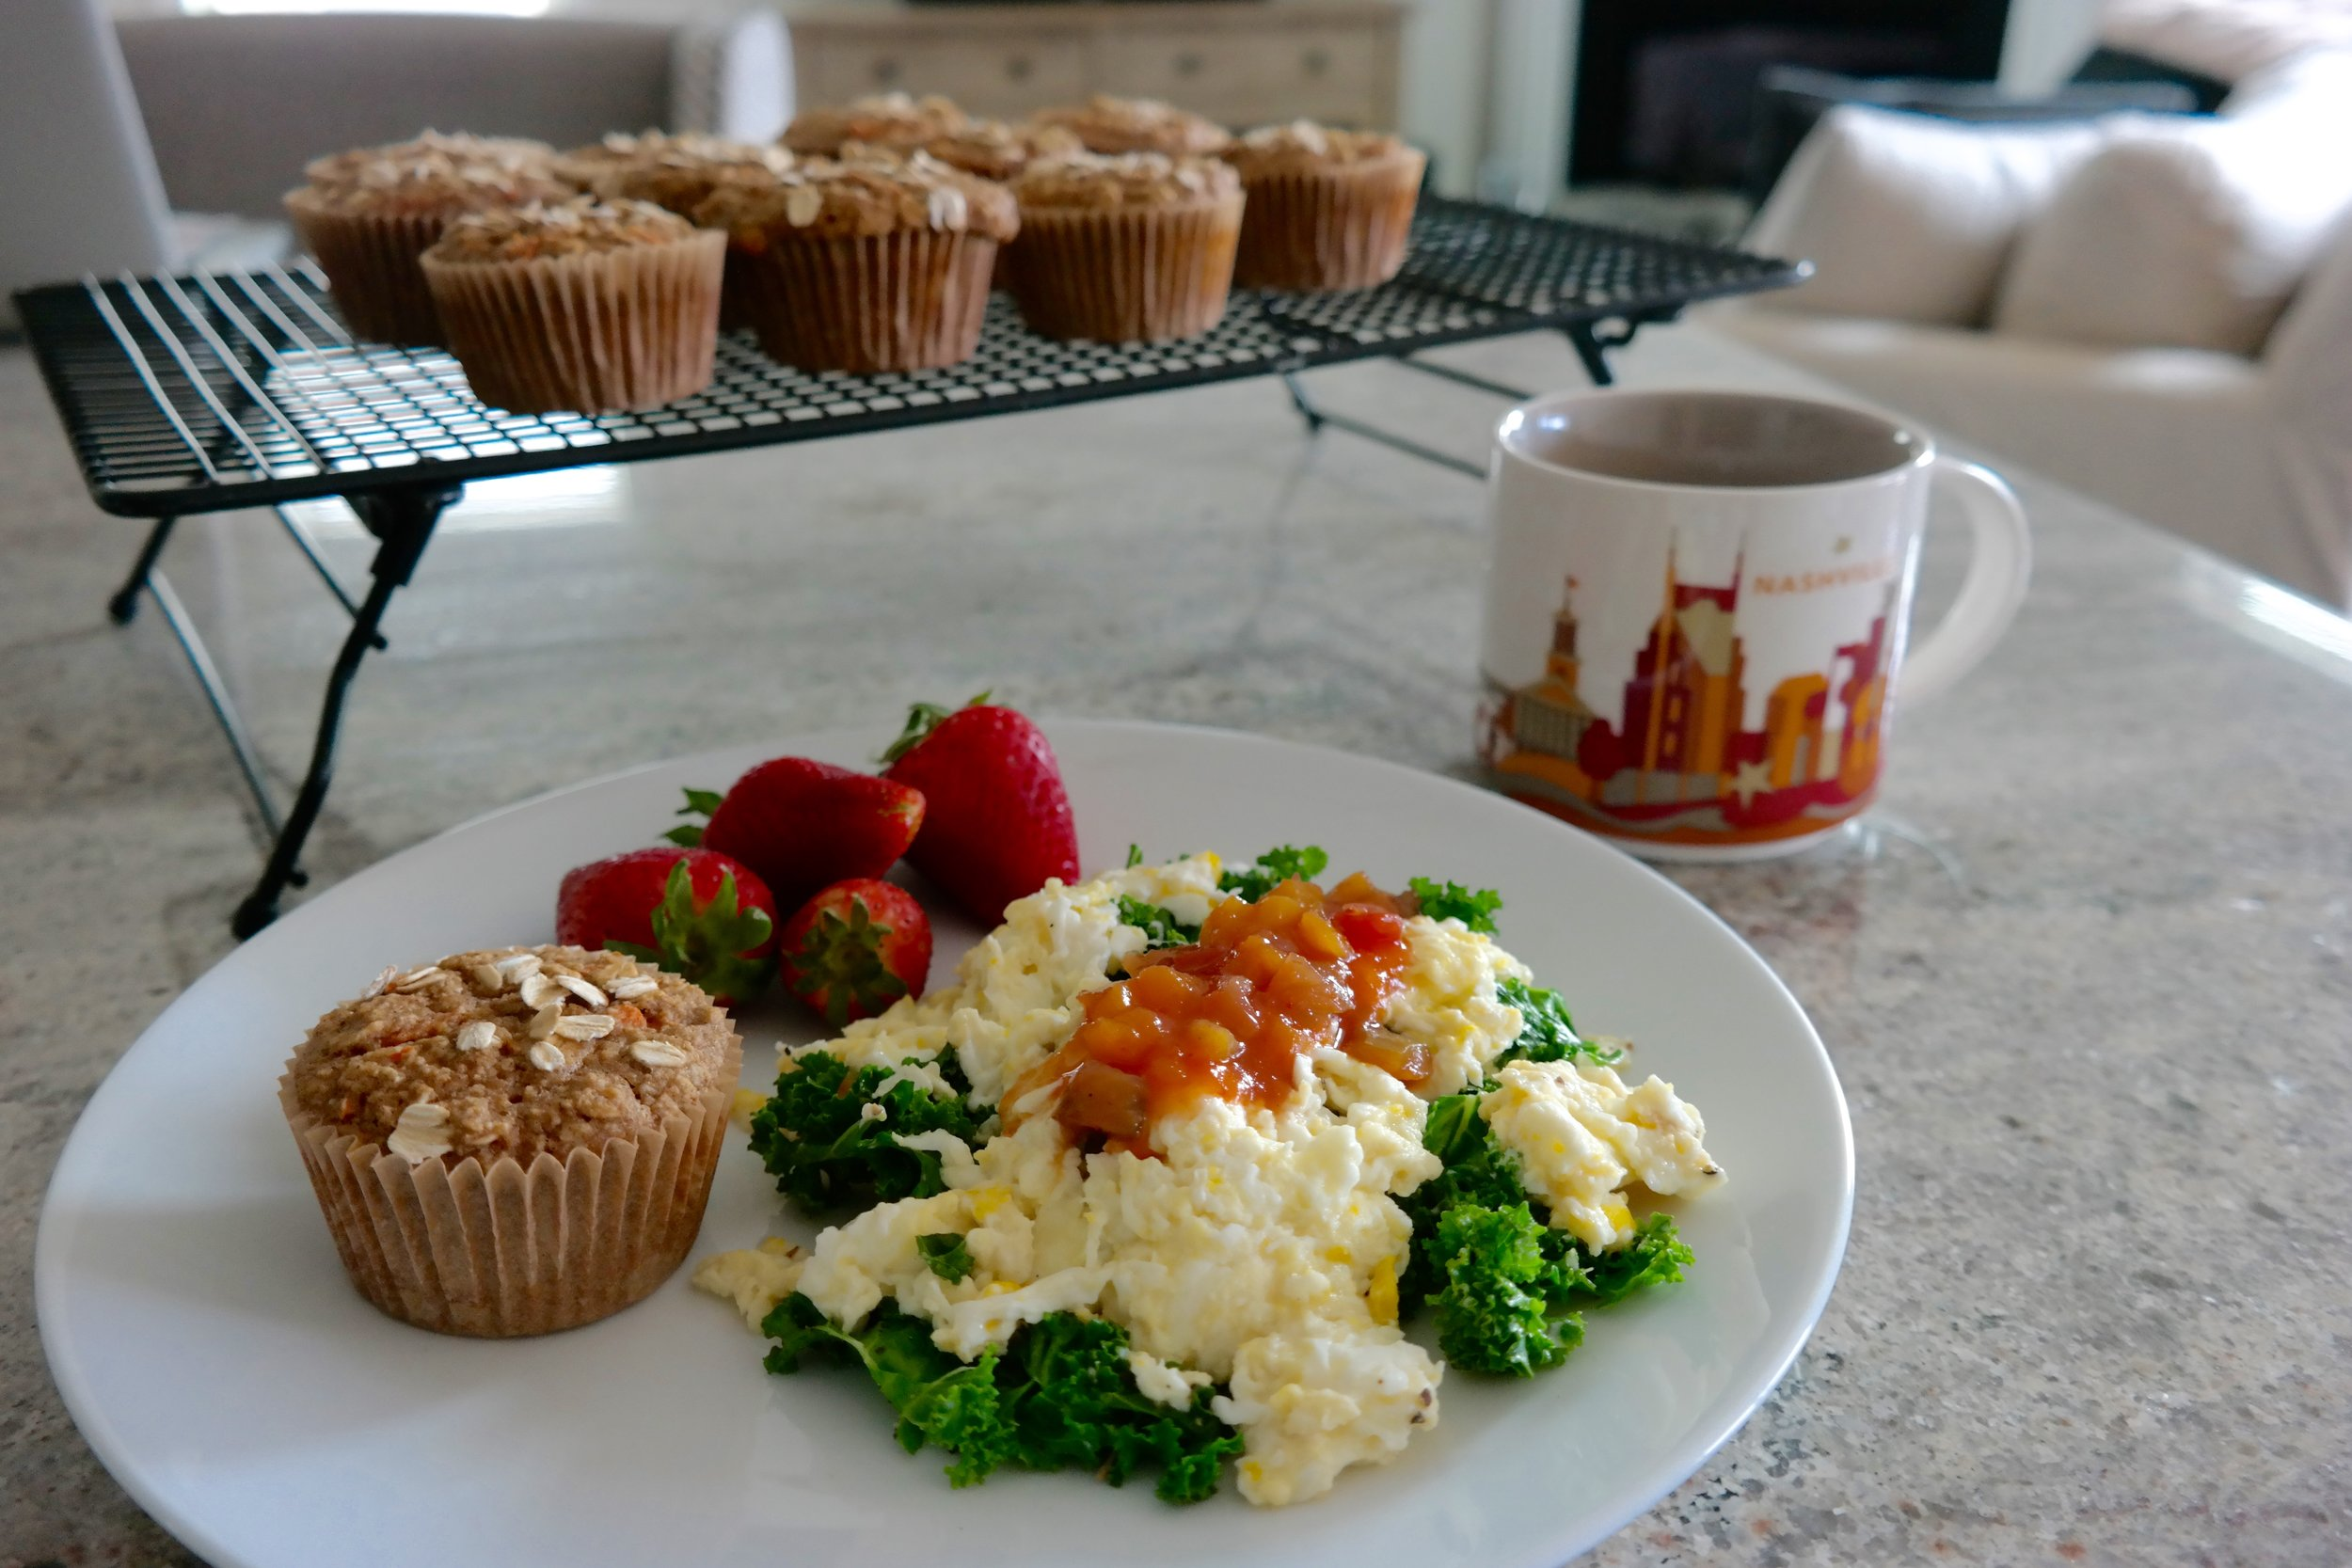 One of my week 1 breakfasts from Spring 2018 Fat Loss Cooking School! A big egg scramble with 1 whole egg, 3 egg whites, a big handful of sautéed kale, a little goat cheese topped with peach salsa. Side of berries and one of these AMAZING Carrot Spice Applesauce Muffins! HAPPY LAQ!